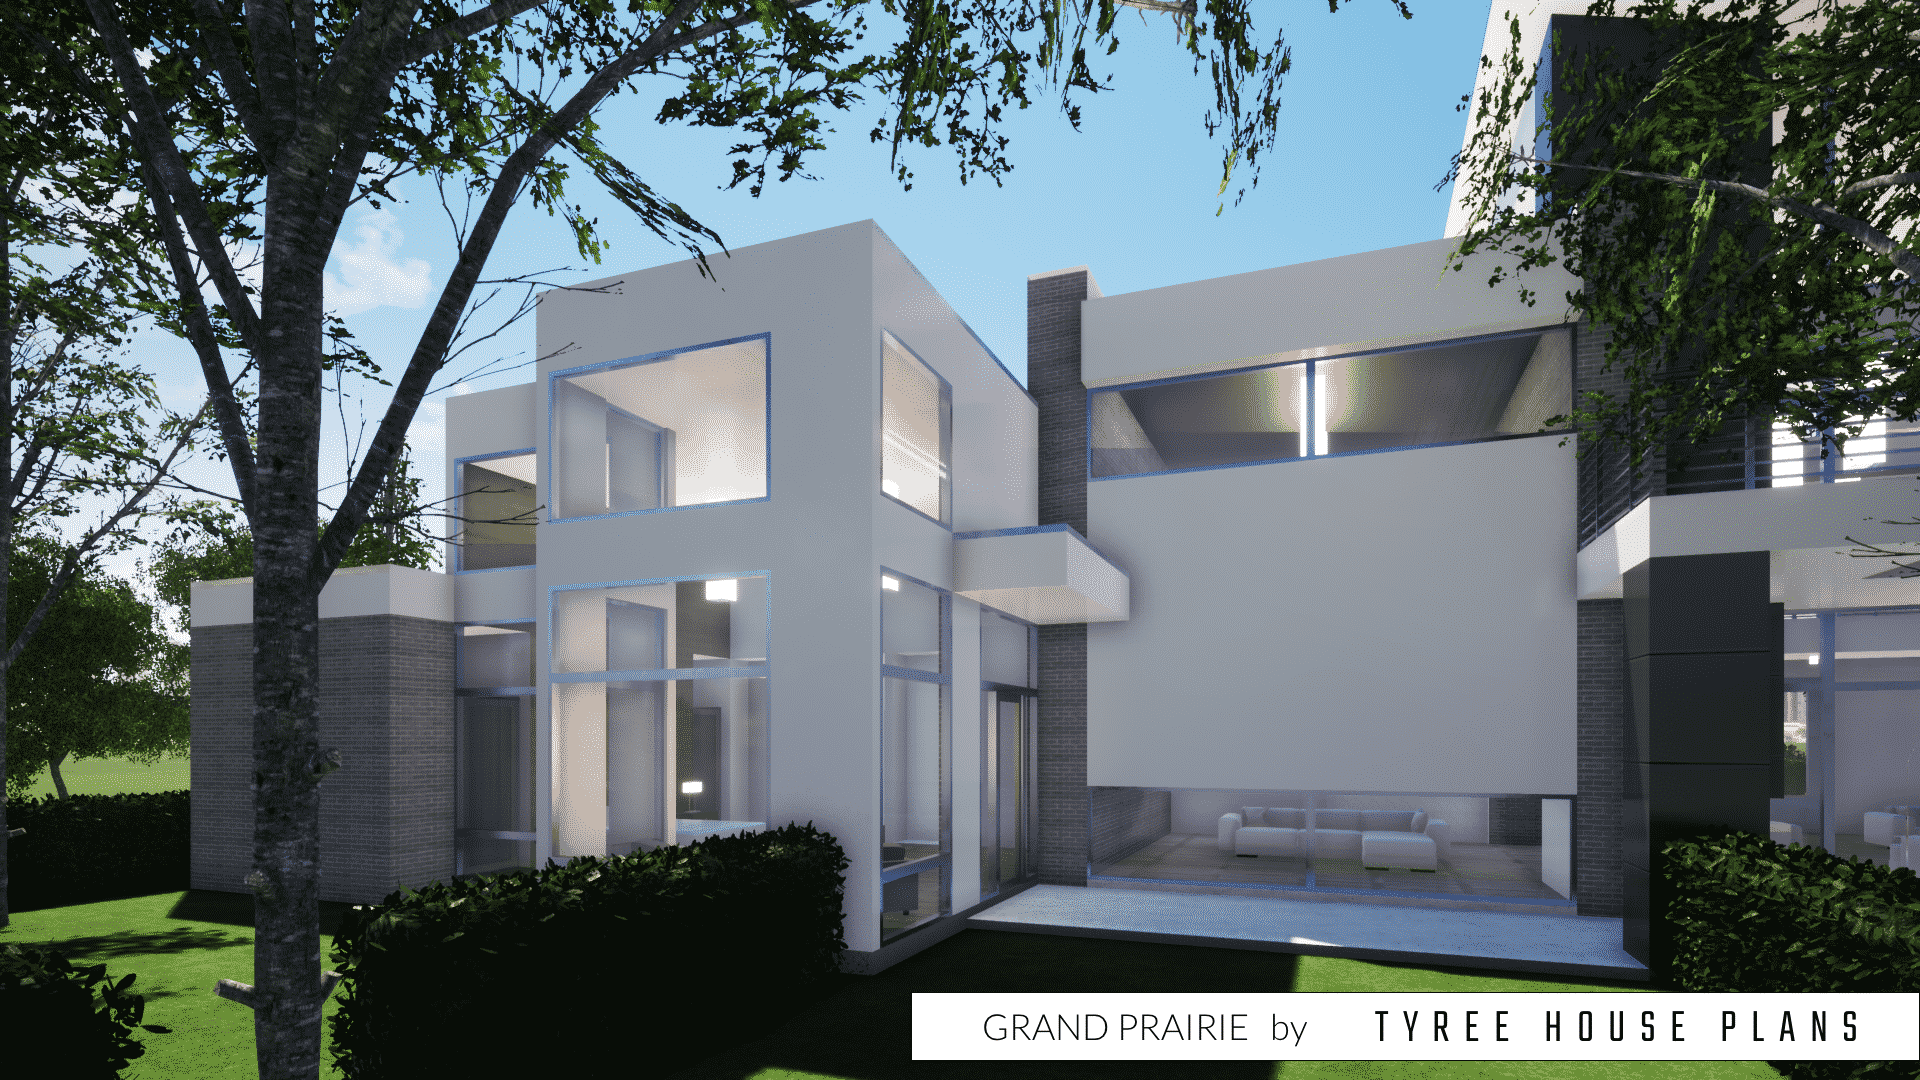 Grand Prairie House Plan by Tyree House Plans